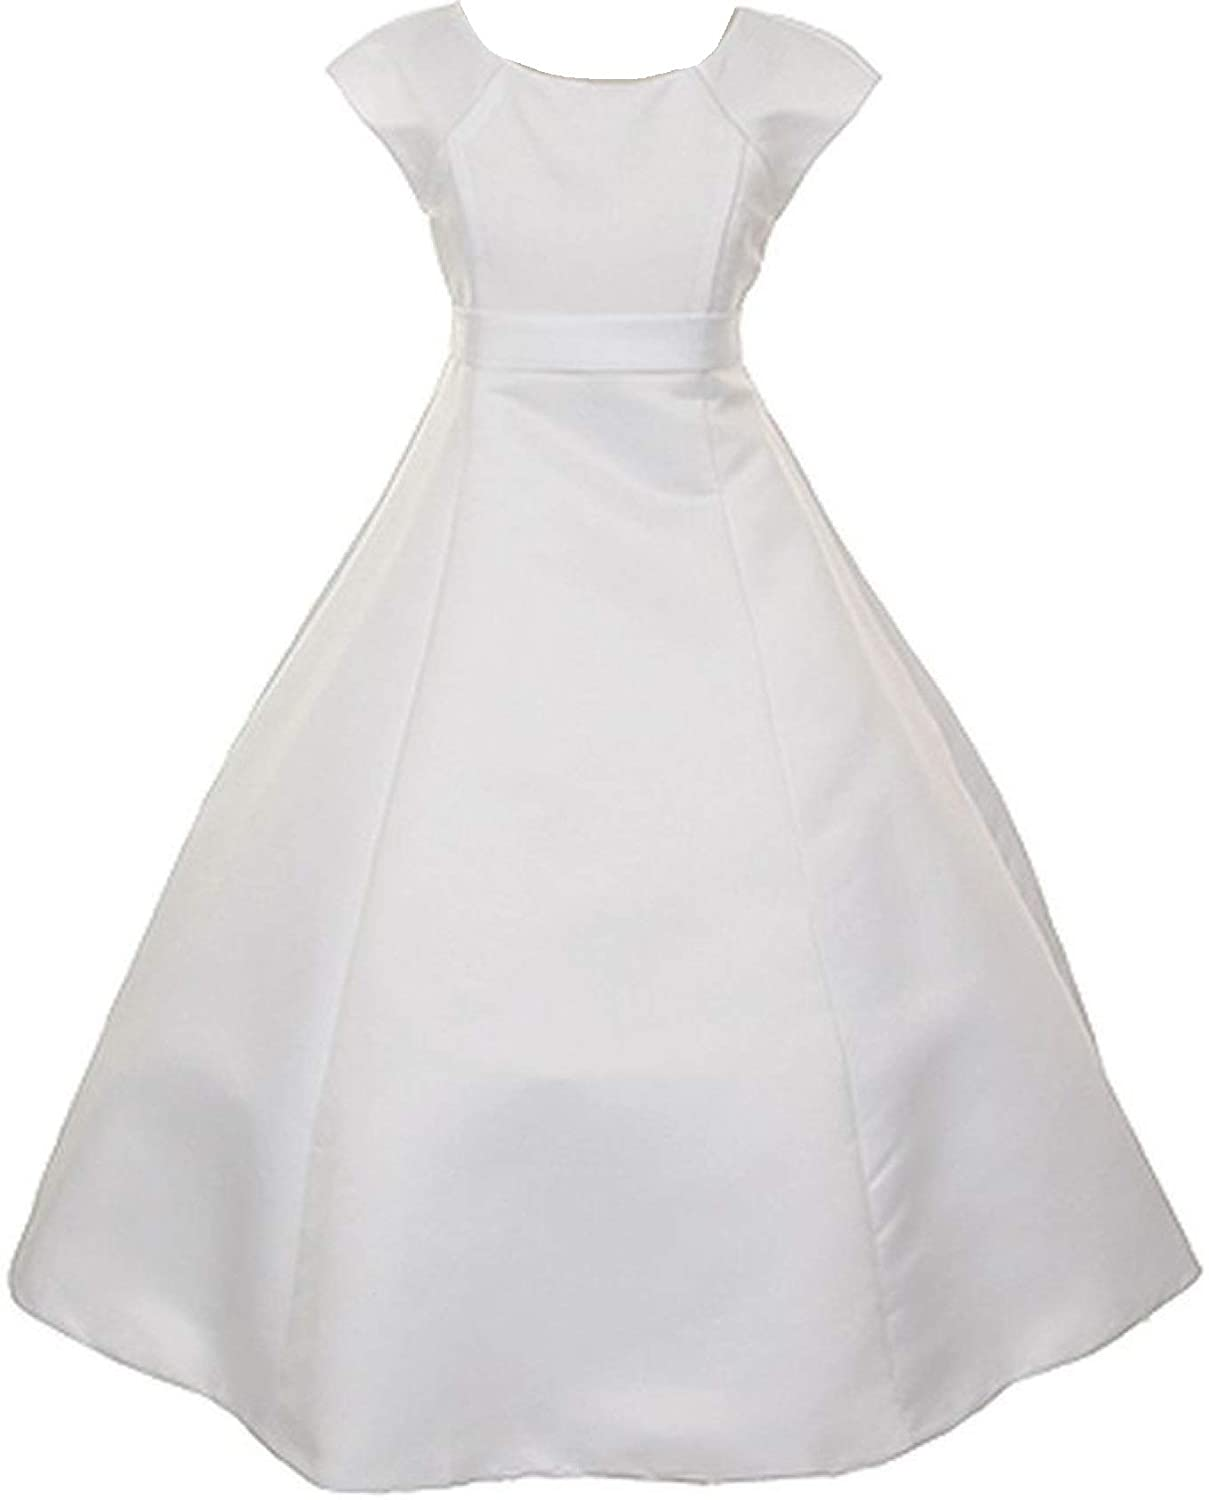 Amazon.com: Little Girls Cap Sleeve Bridal Satin Holy First ...